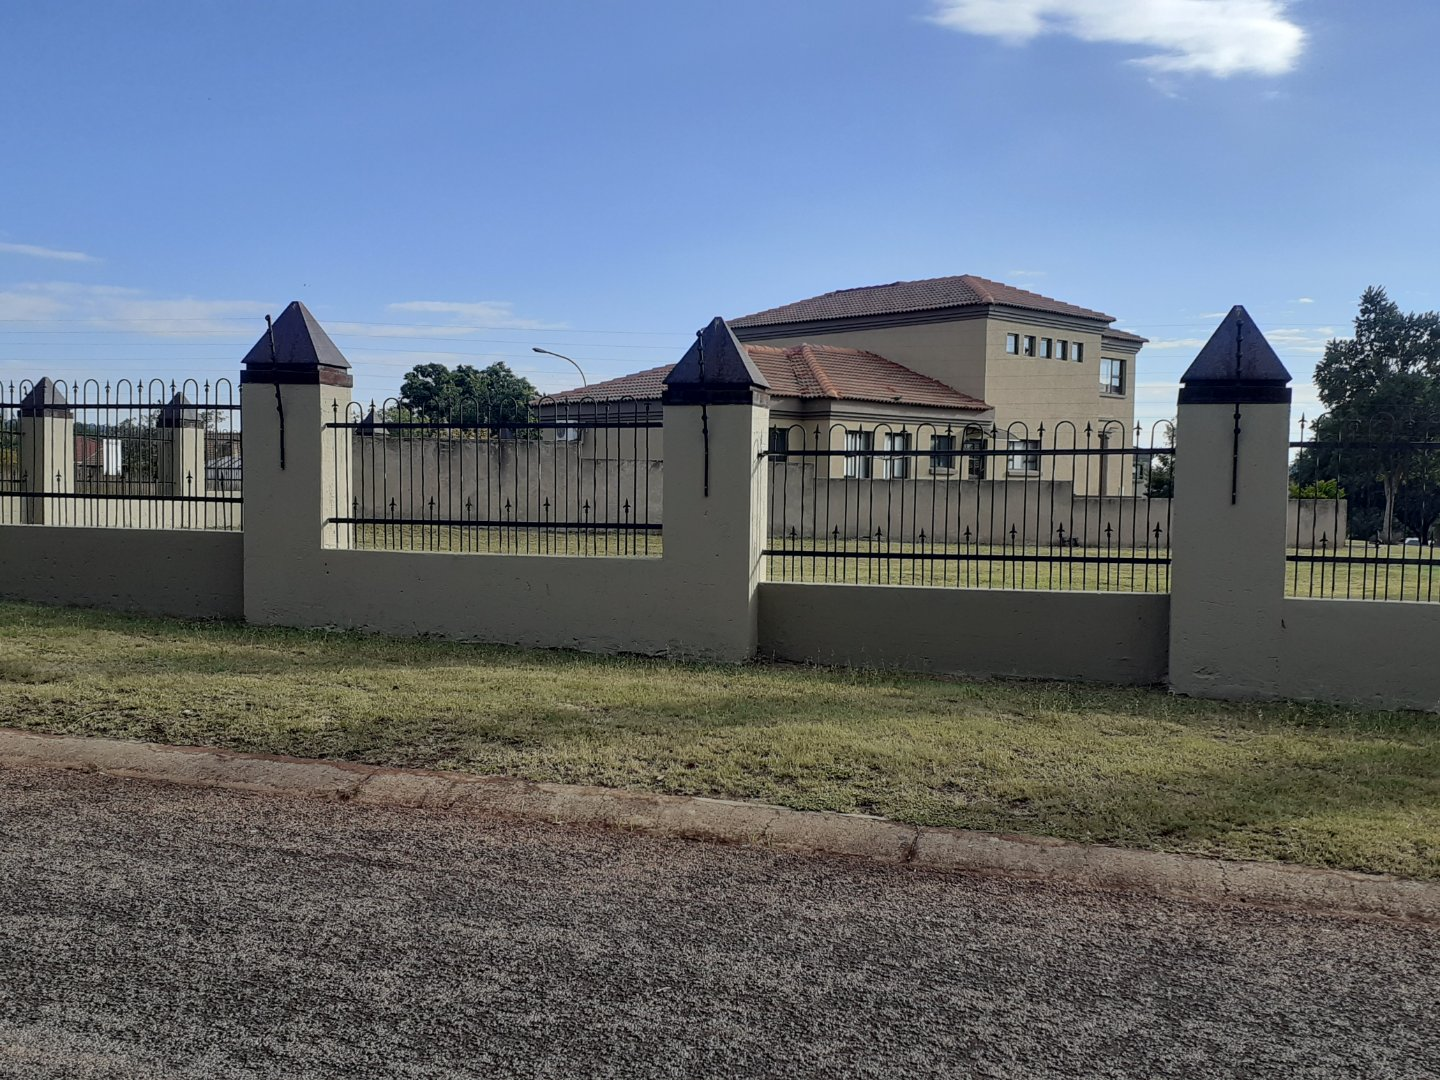 530(sqm) VACANT LAND FOR SALE IN FOCHVILLE